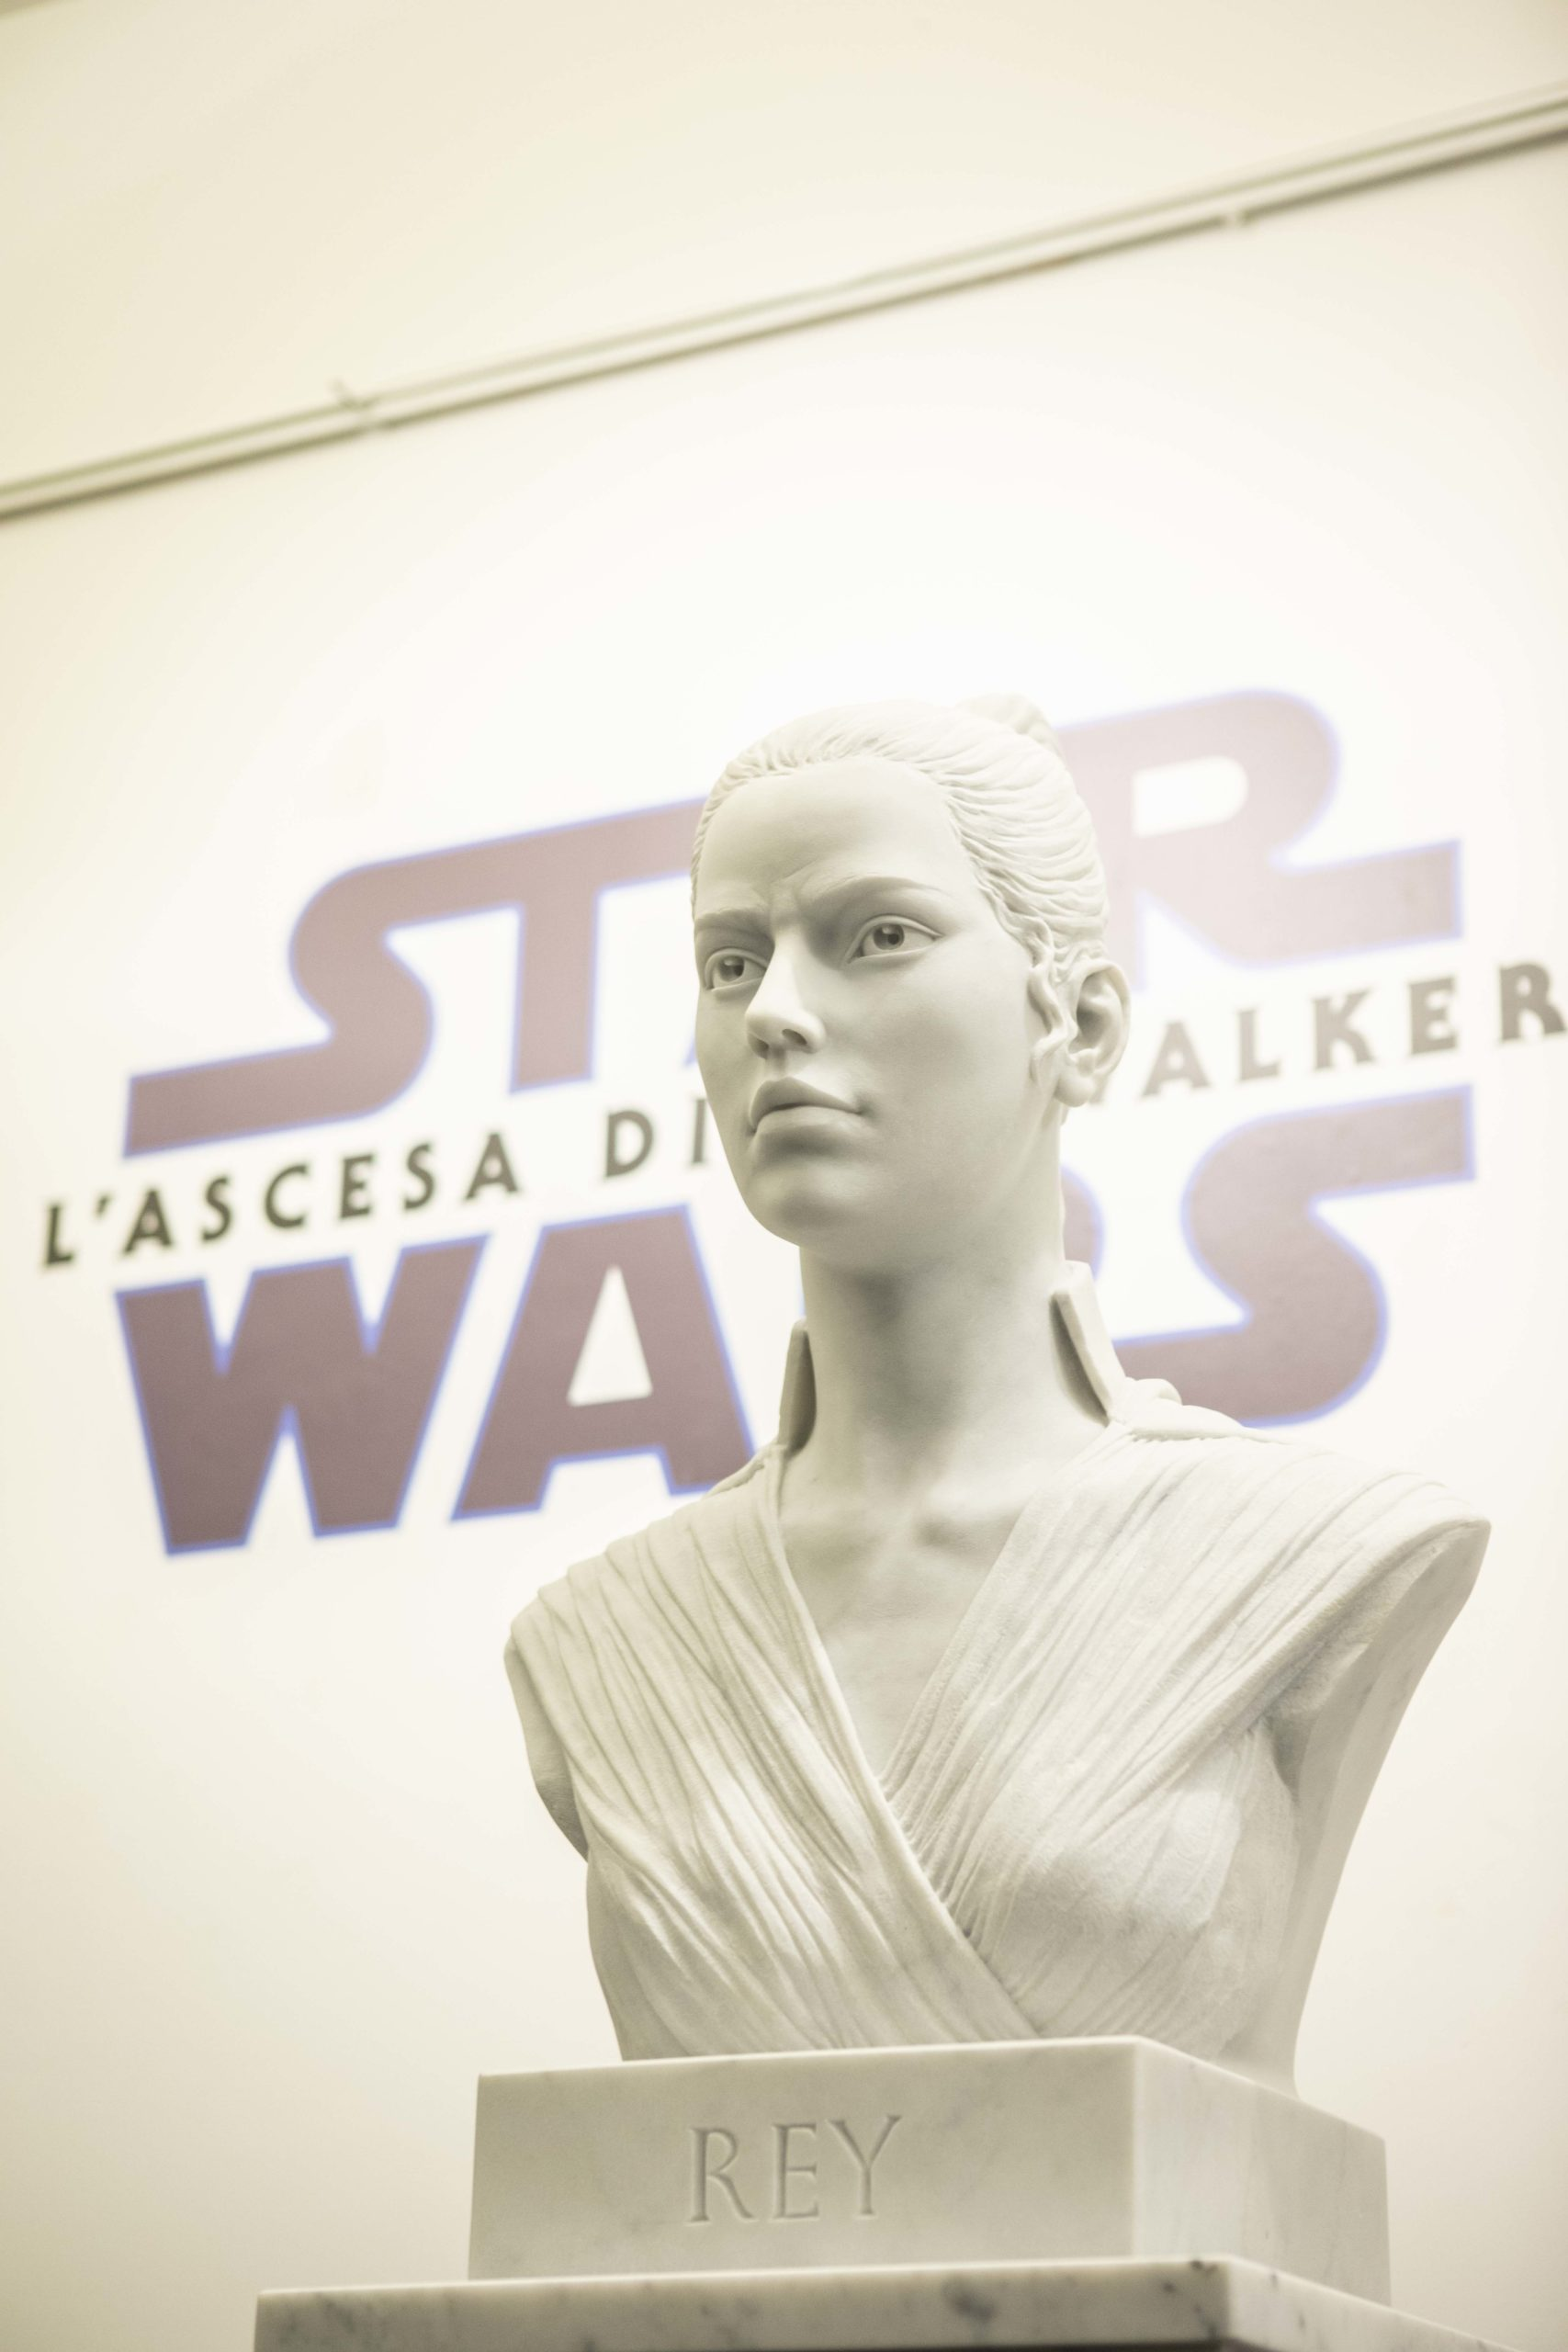 Star Wars: L'Ascesa di Skywalker, le sculture ispirate ai personaggi del film